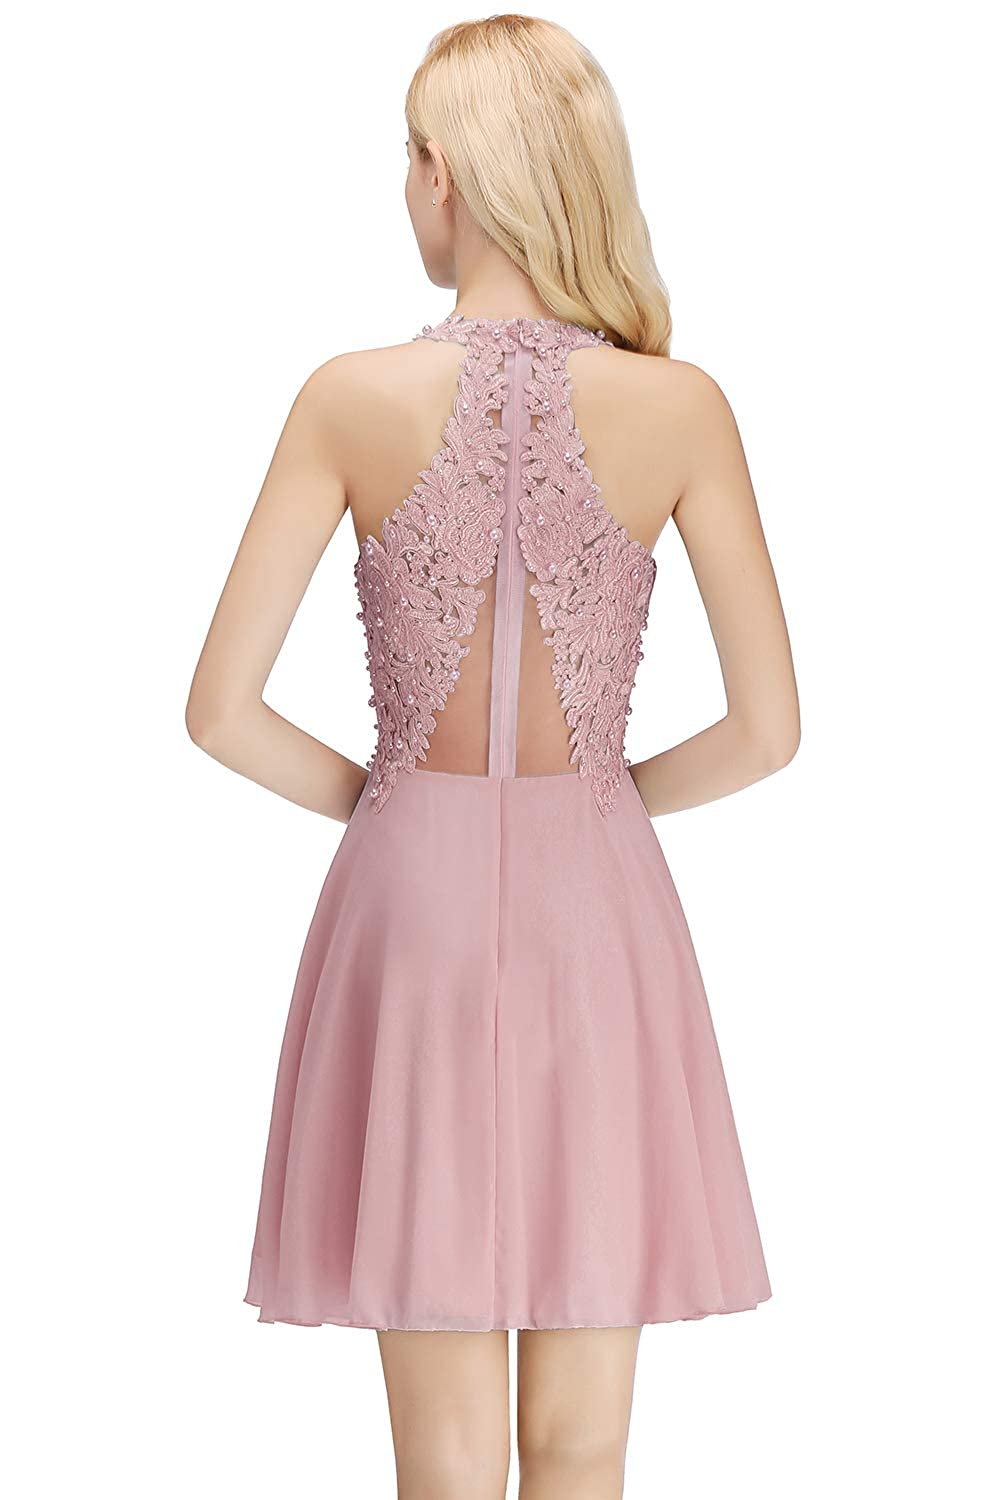 7450054091d MisShow Junior s Halter Lace Applique Short Homecoming Cocktail Party Prom  Dress at Amazon Women s Clothing store